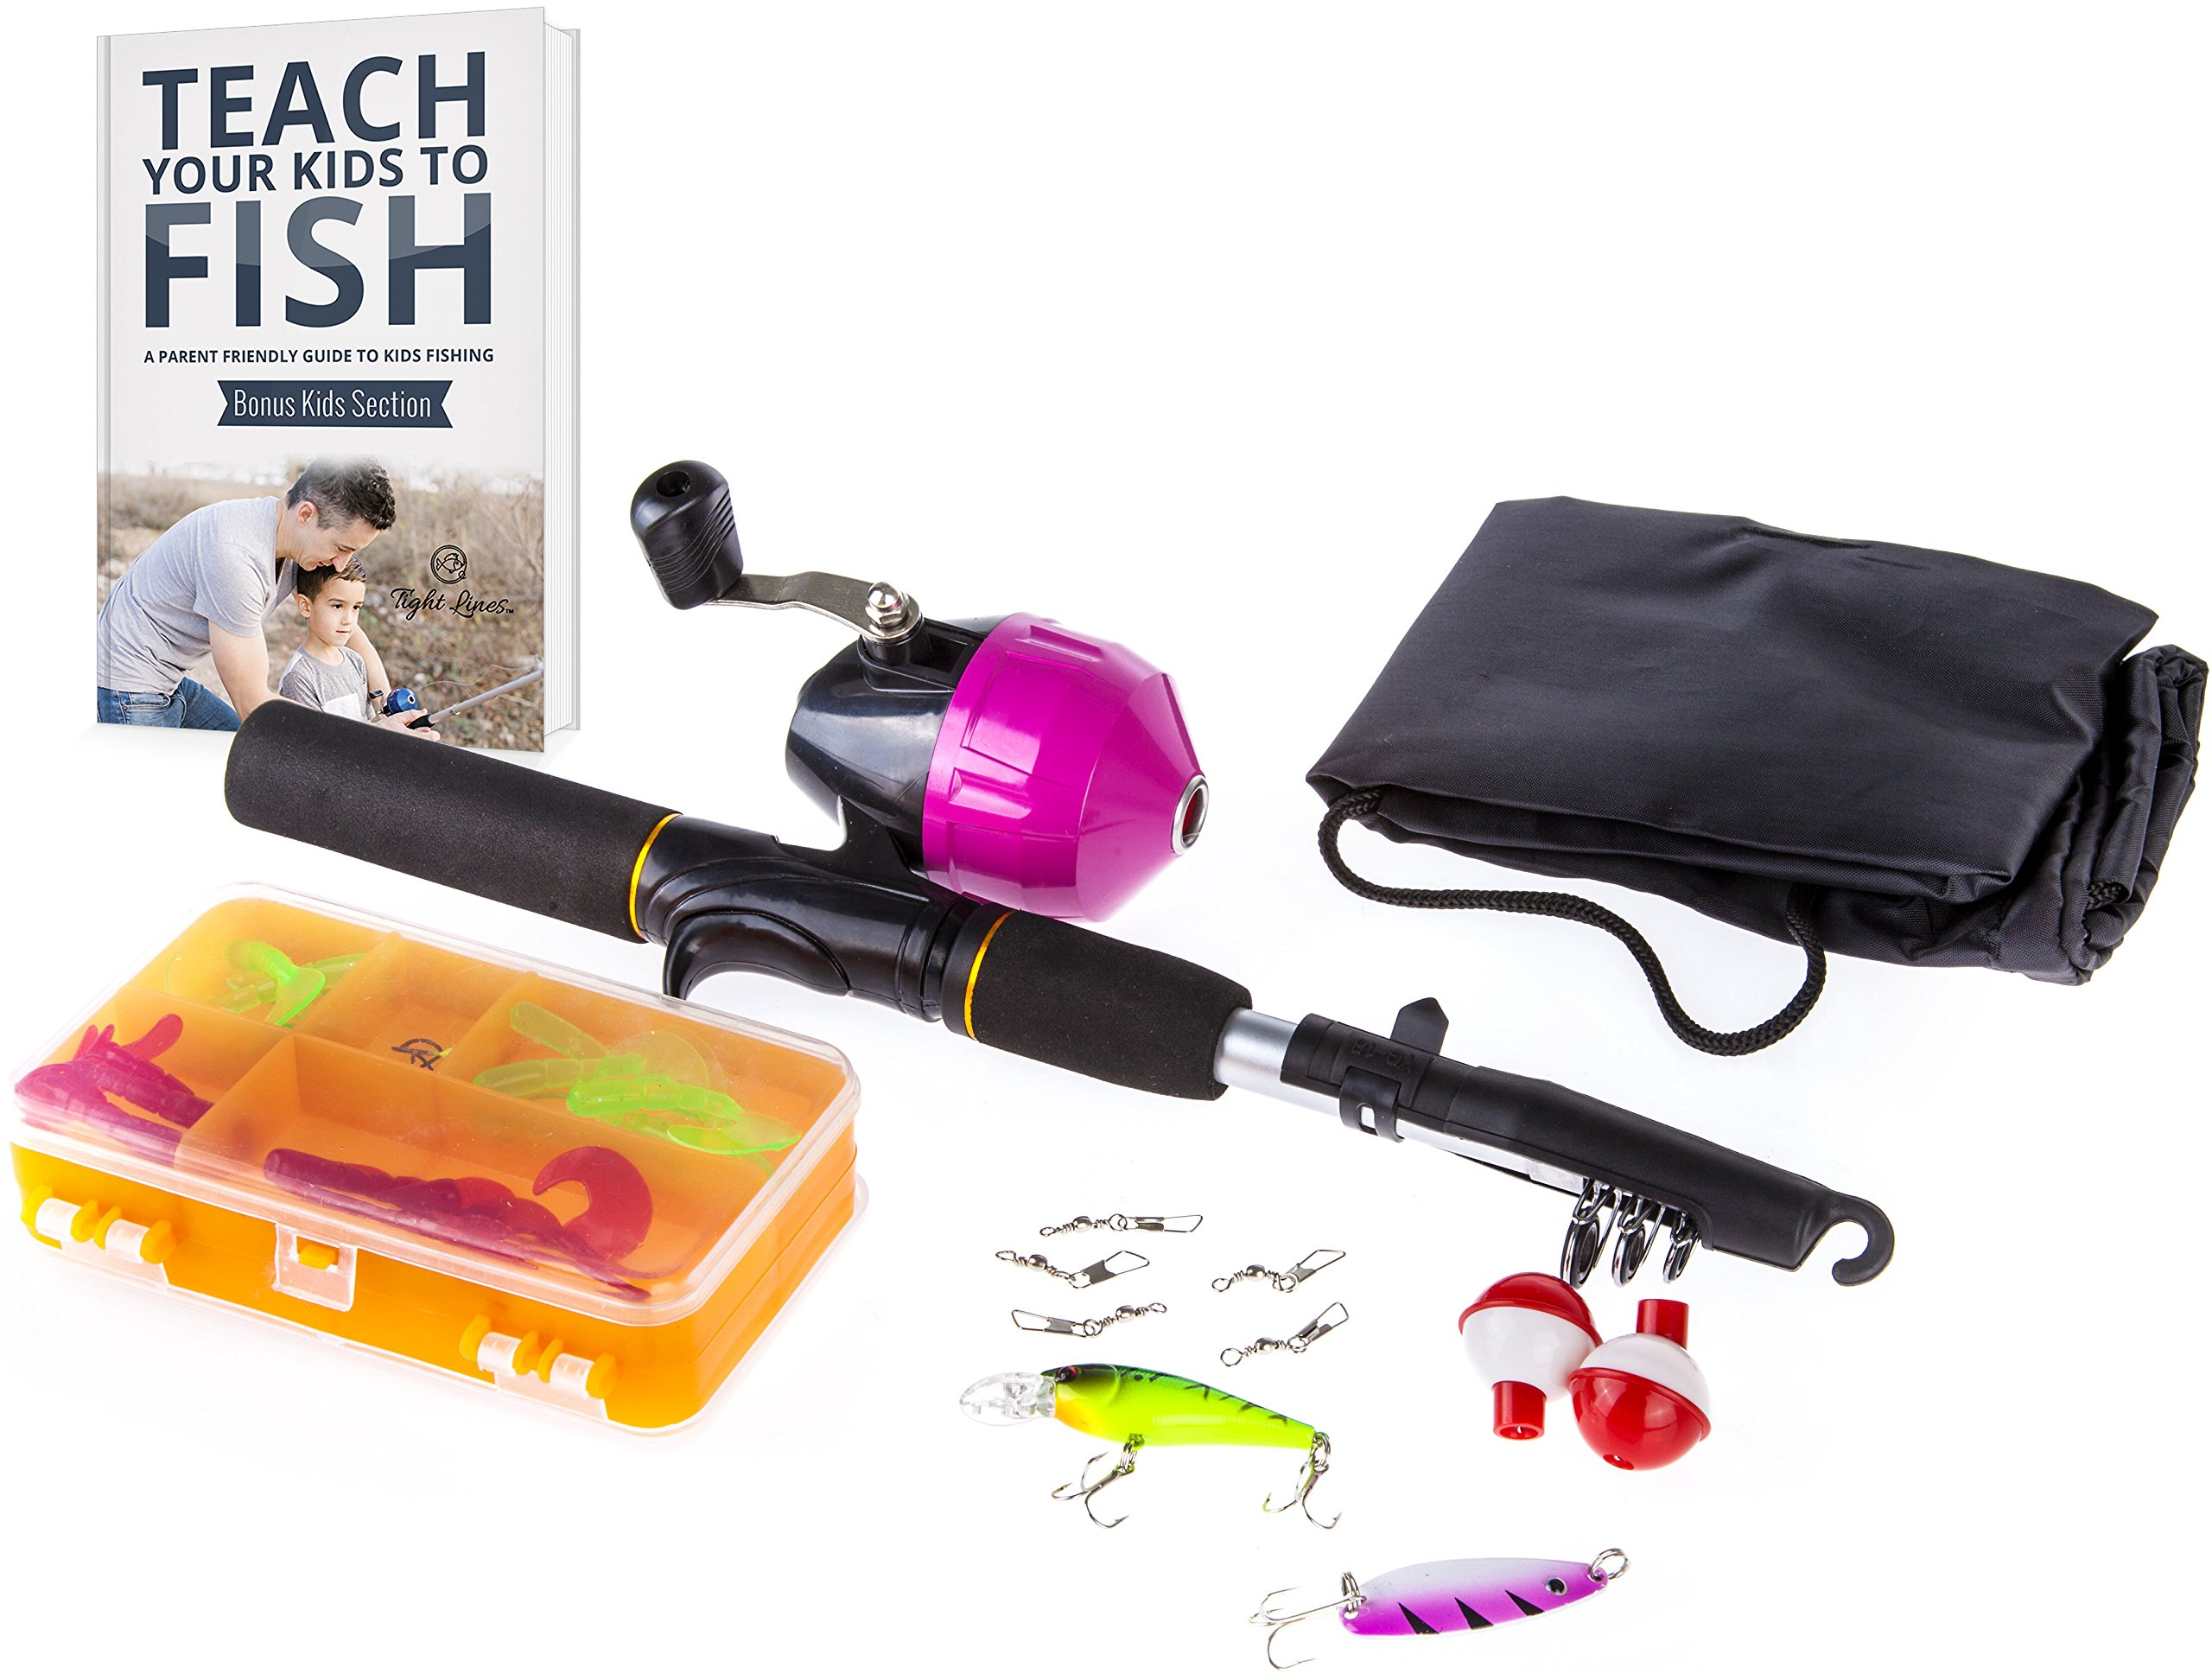 Tightlines Kids Fishing Rod For Girls All In One Combo Set Pink Youth Fishing Kit Includes Collapsible Rod Reel Tackle Box Travel Bag And Ebook Perfect Kids Fishing Pole Gift Kit